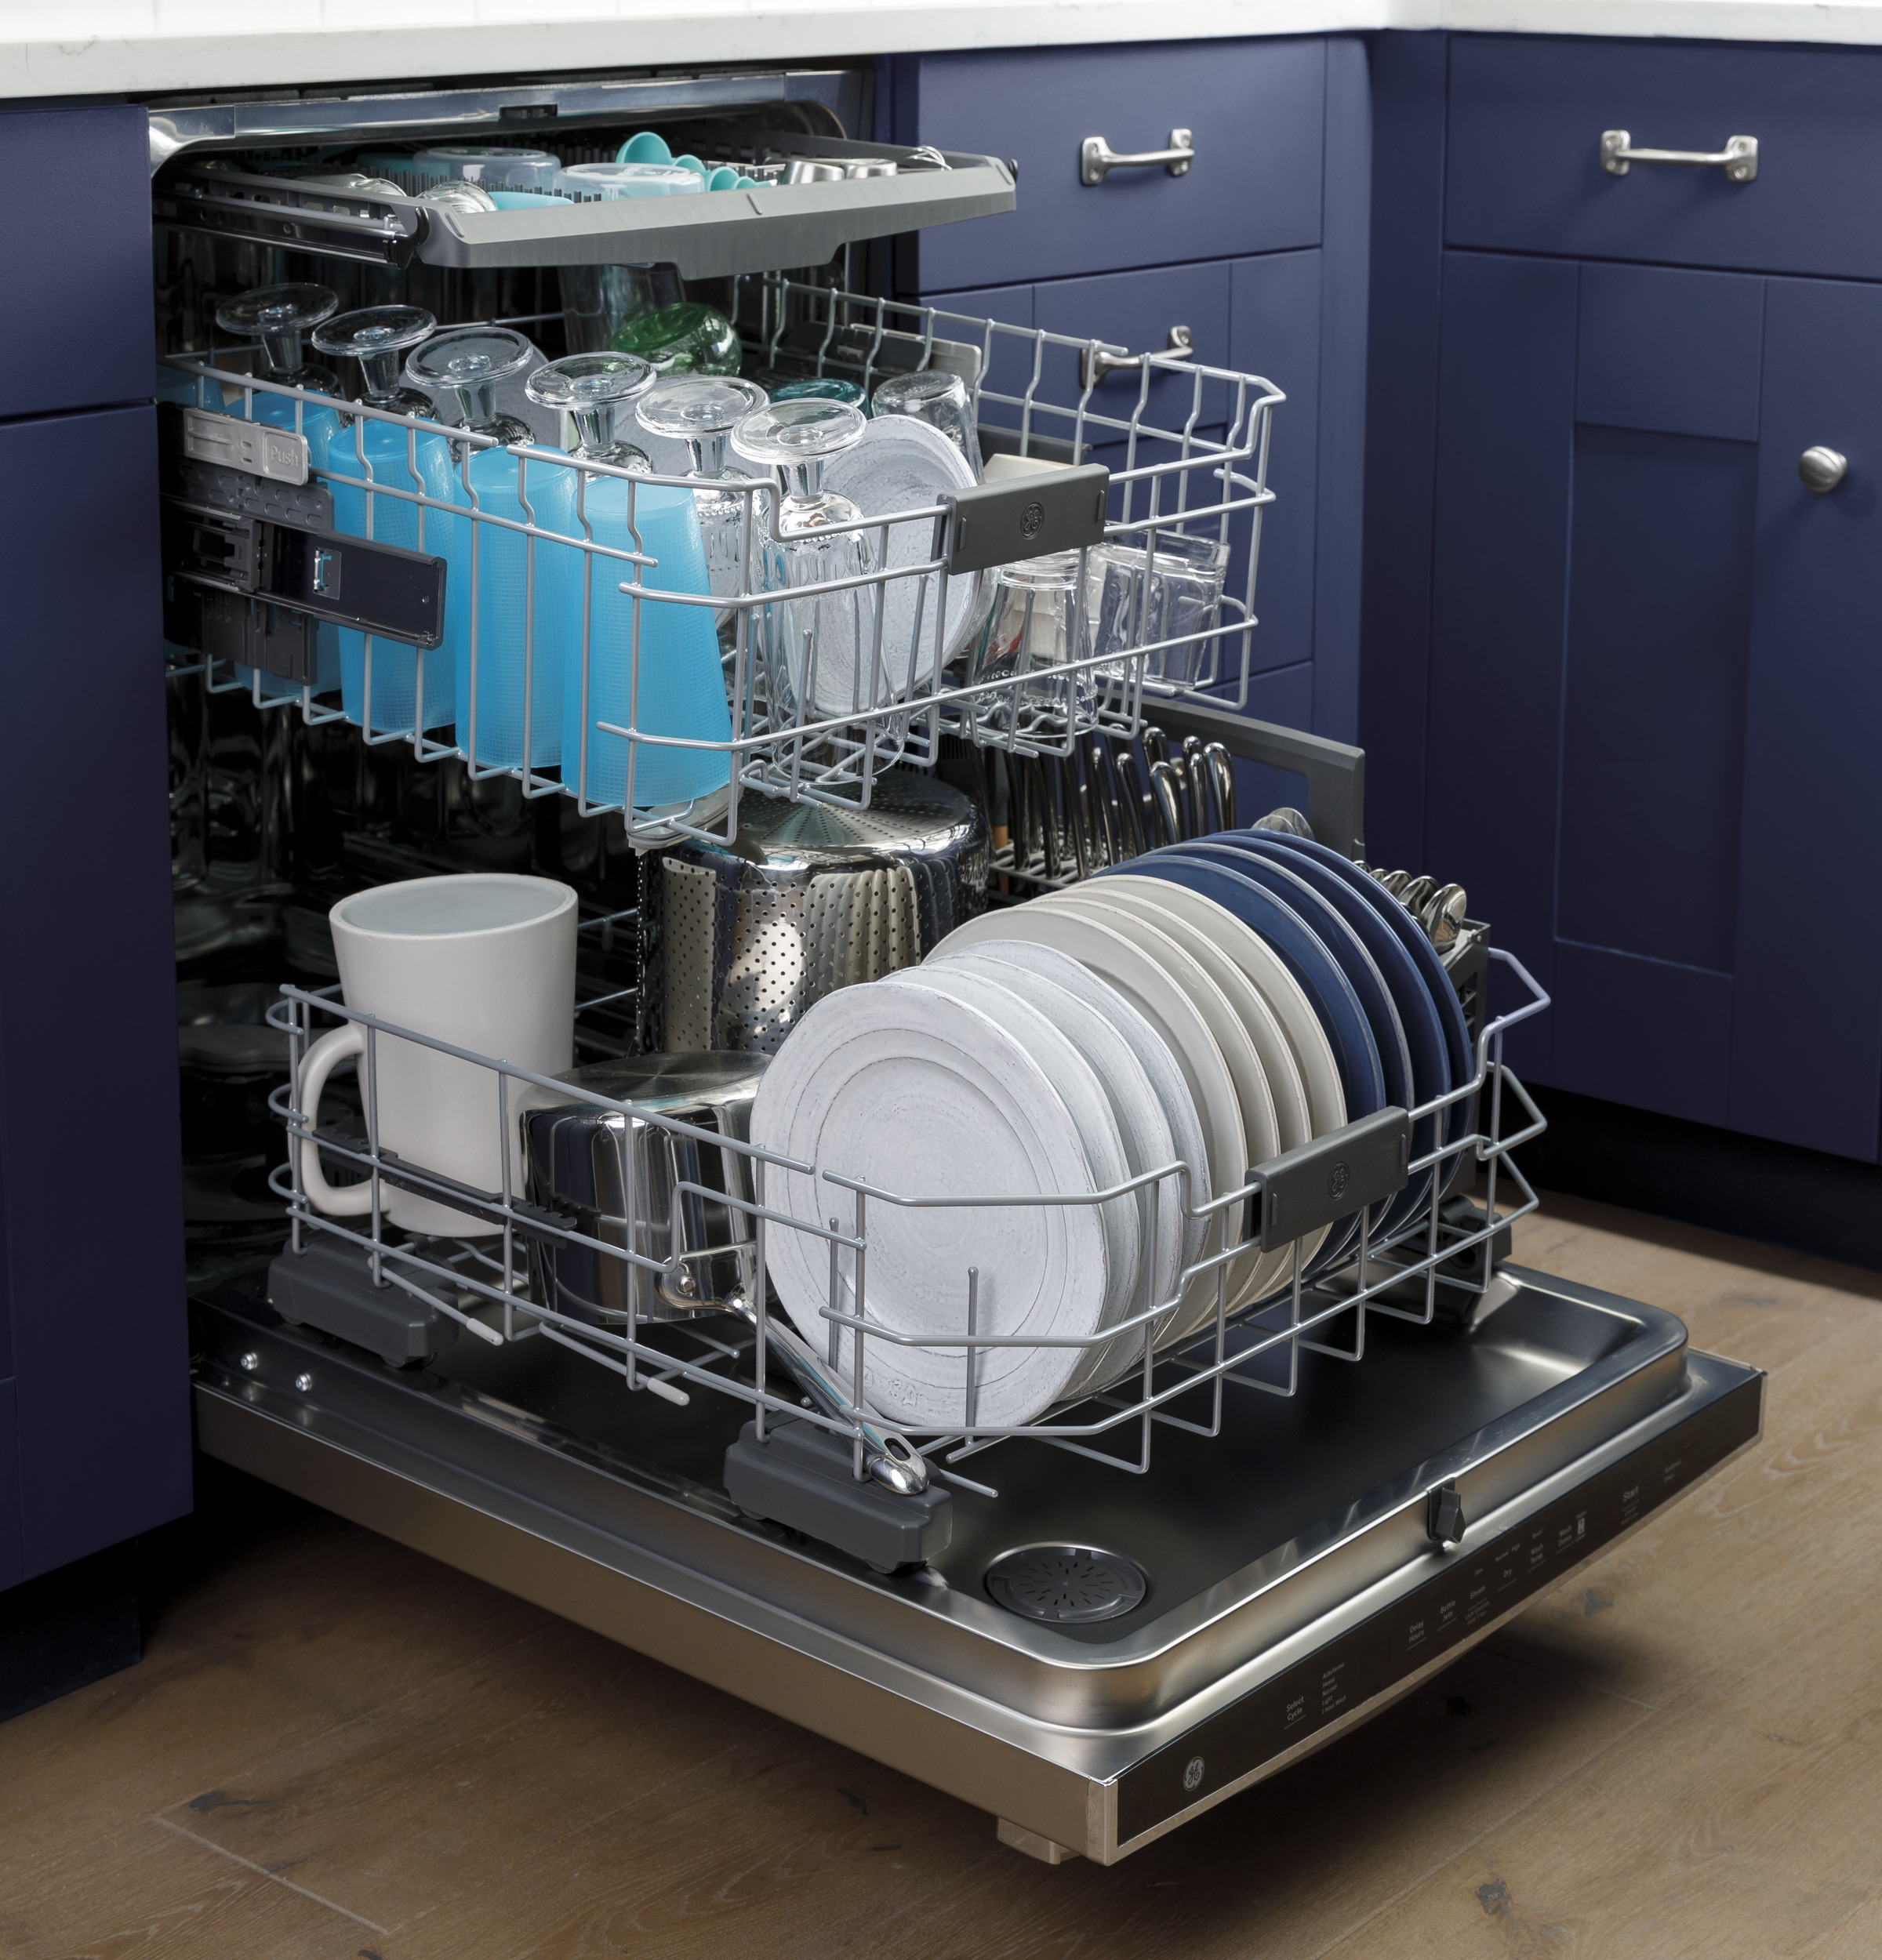 Model: GDT665SGNWW   GE GE® Top Control with Stainless Steel Interior Dishwasher with Sanitize Cycle & Dry Boost with Fan Assist